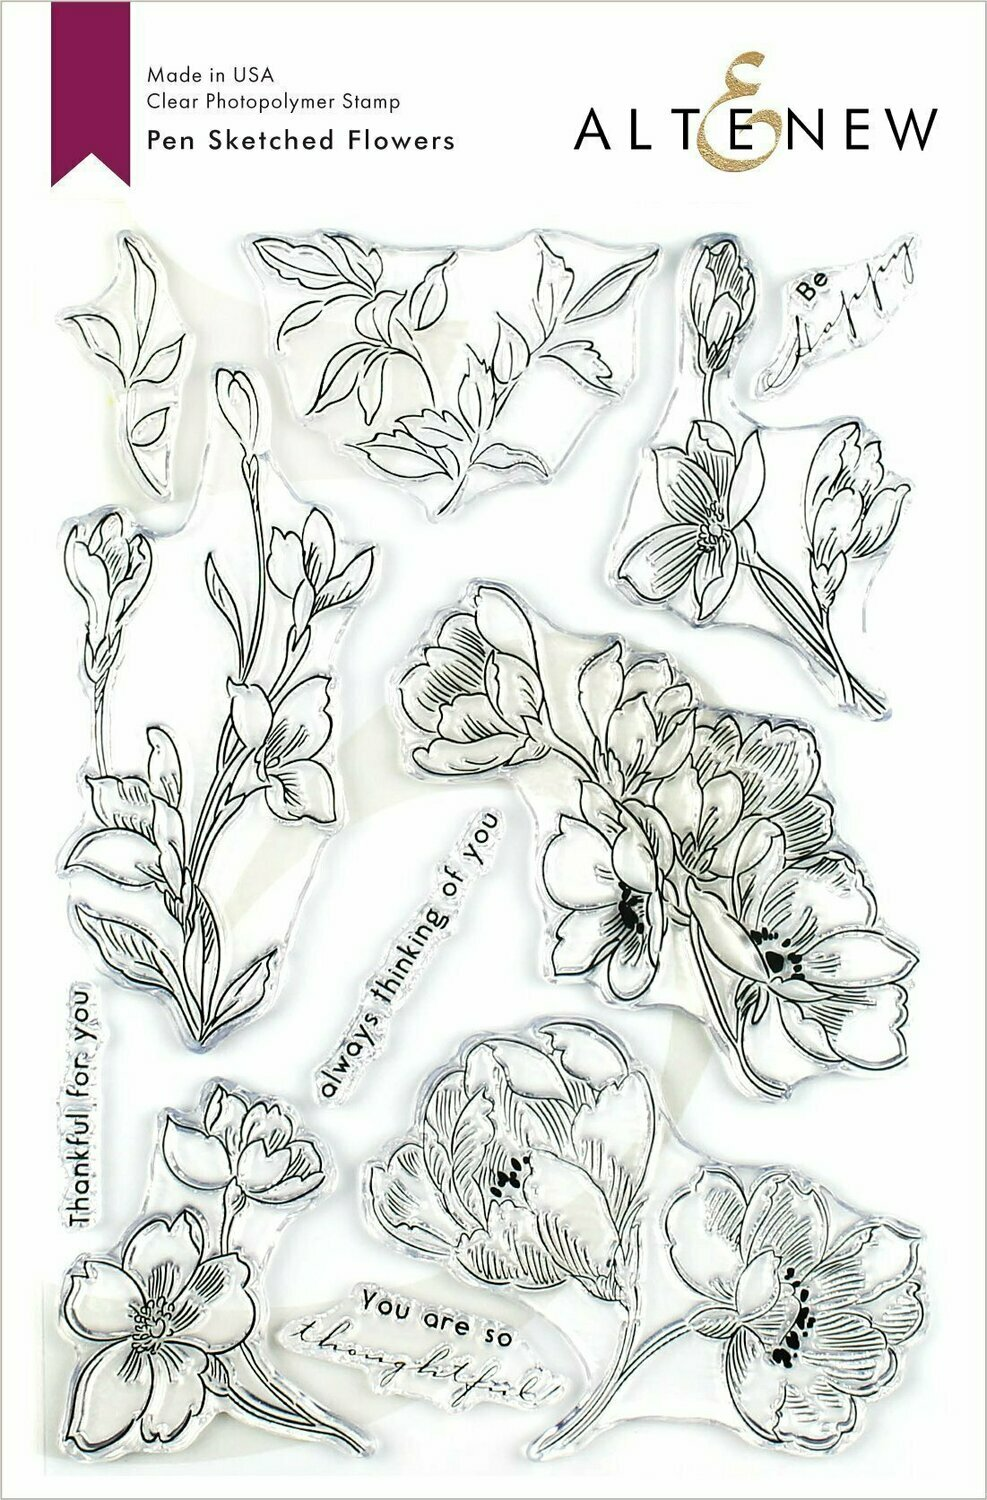 Altenew PEN SKETCHED FLOWERS Clear Stamp Set